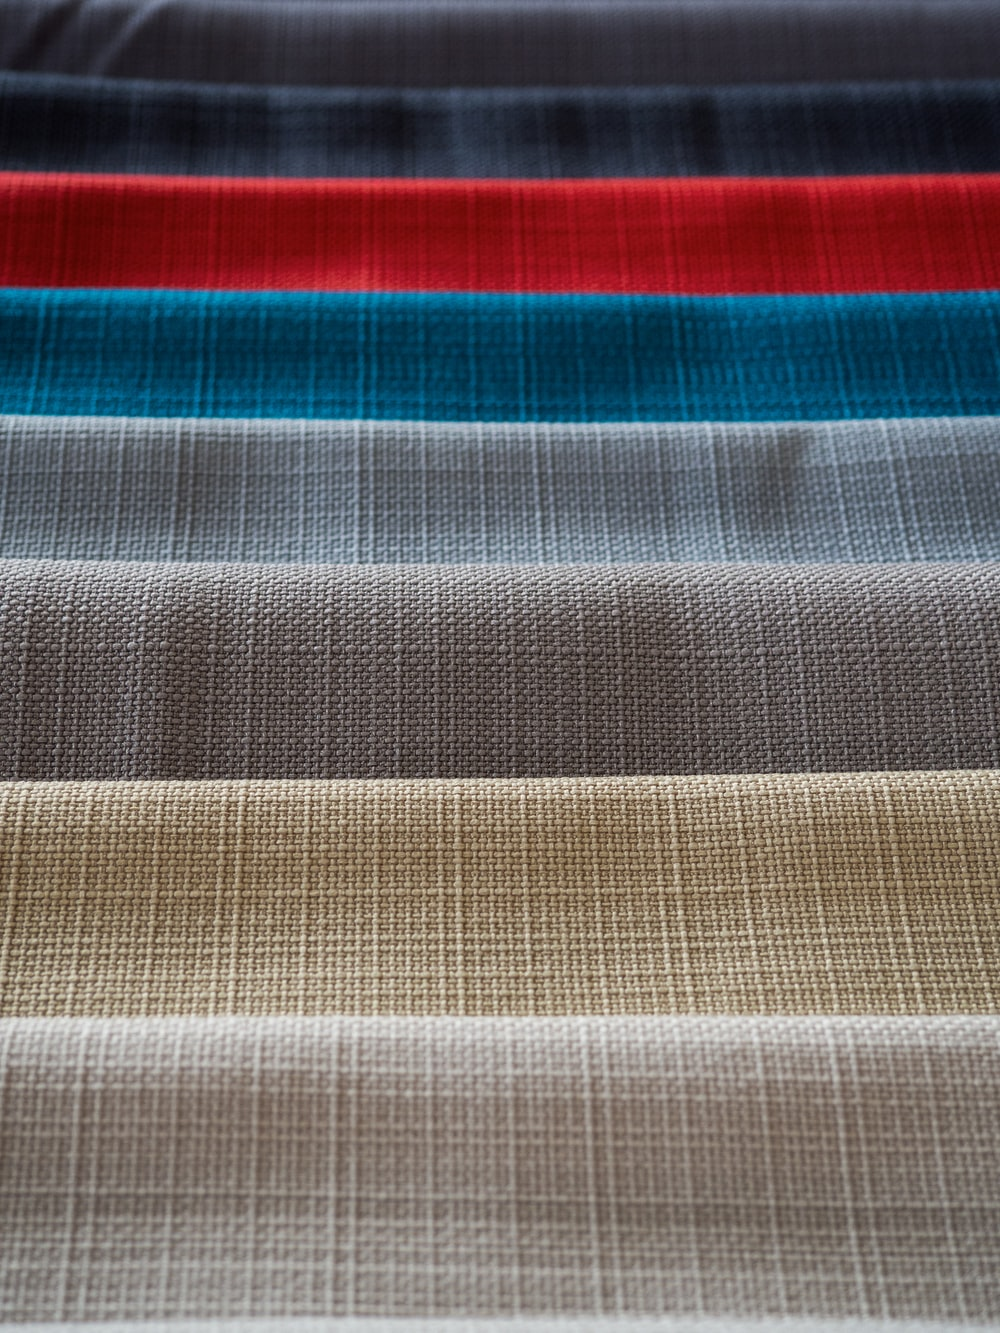 red white and black striped textile